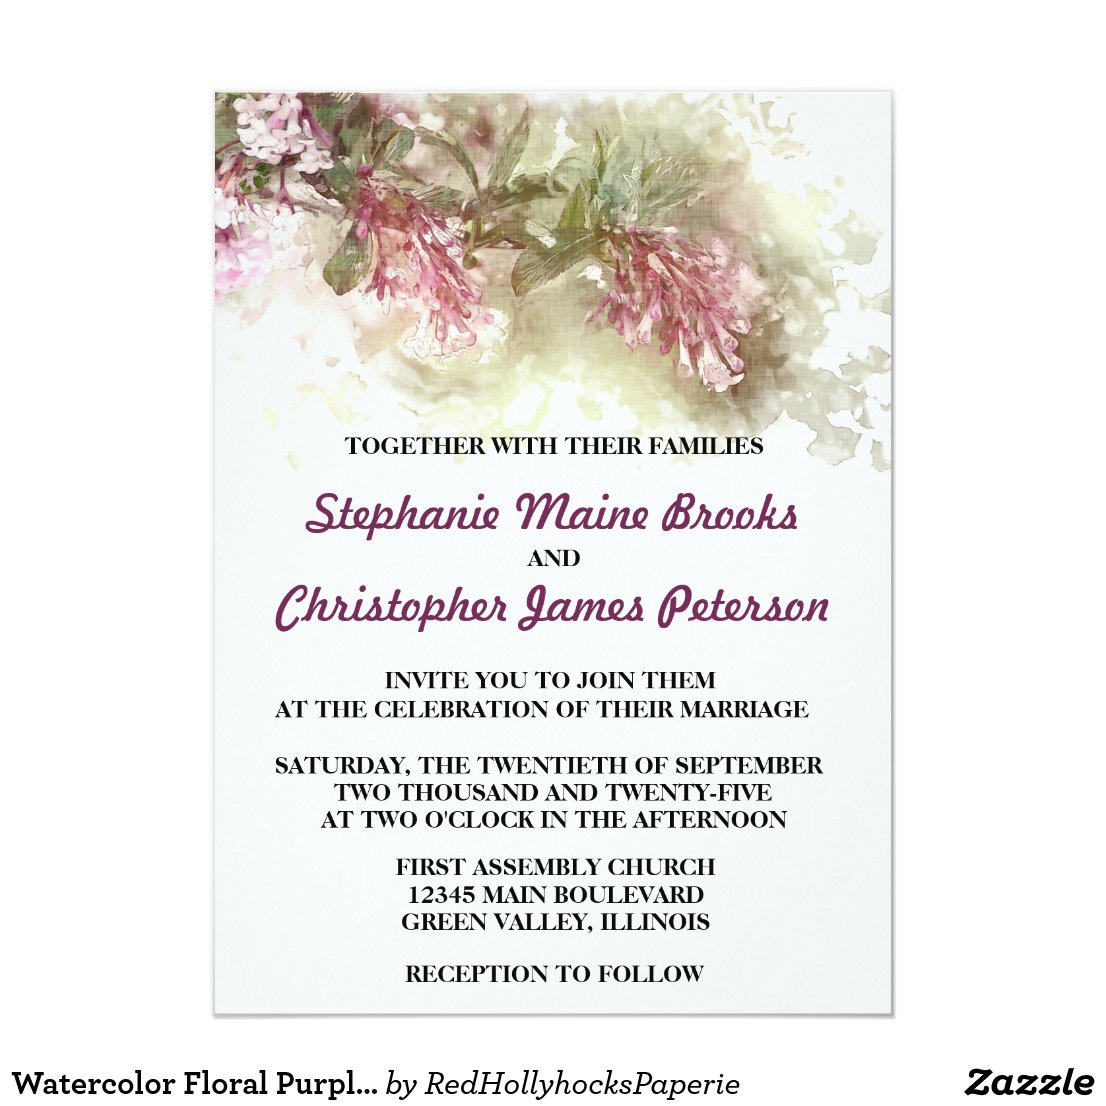 Watercolor Floral Purple Jasmine Wedding Card